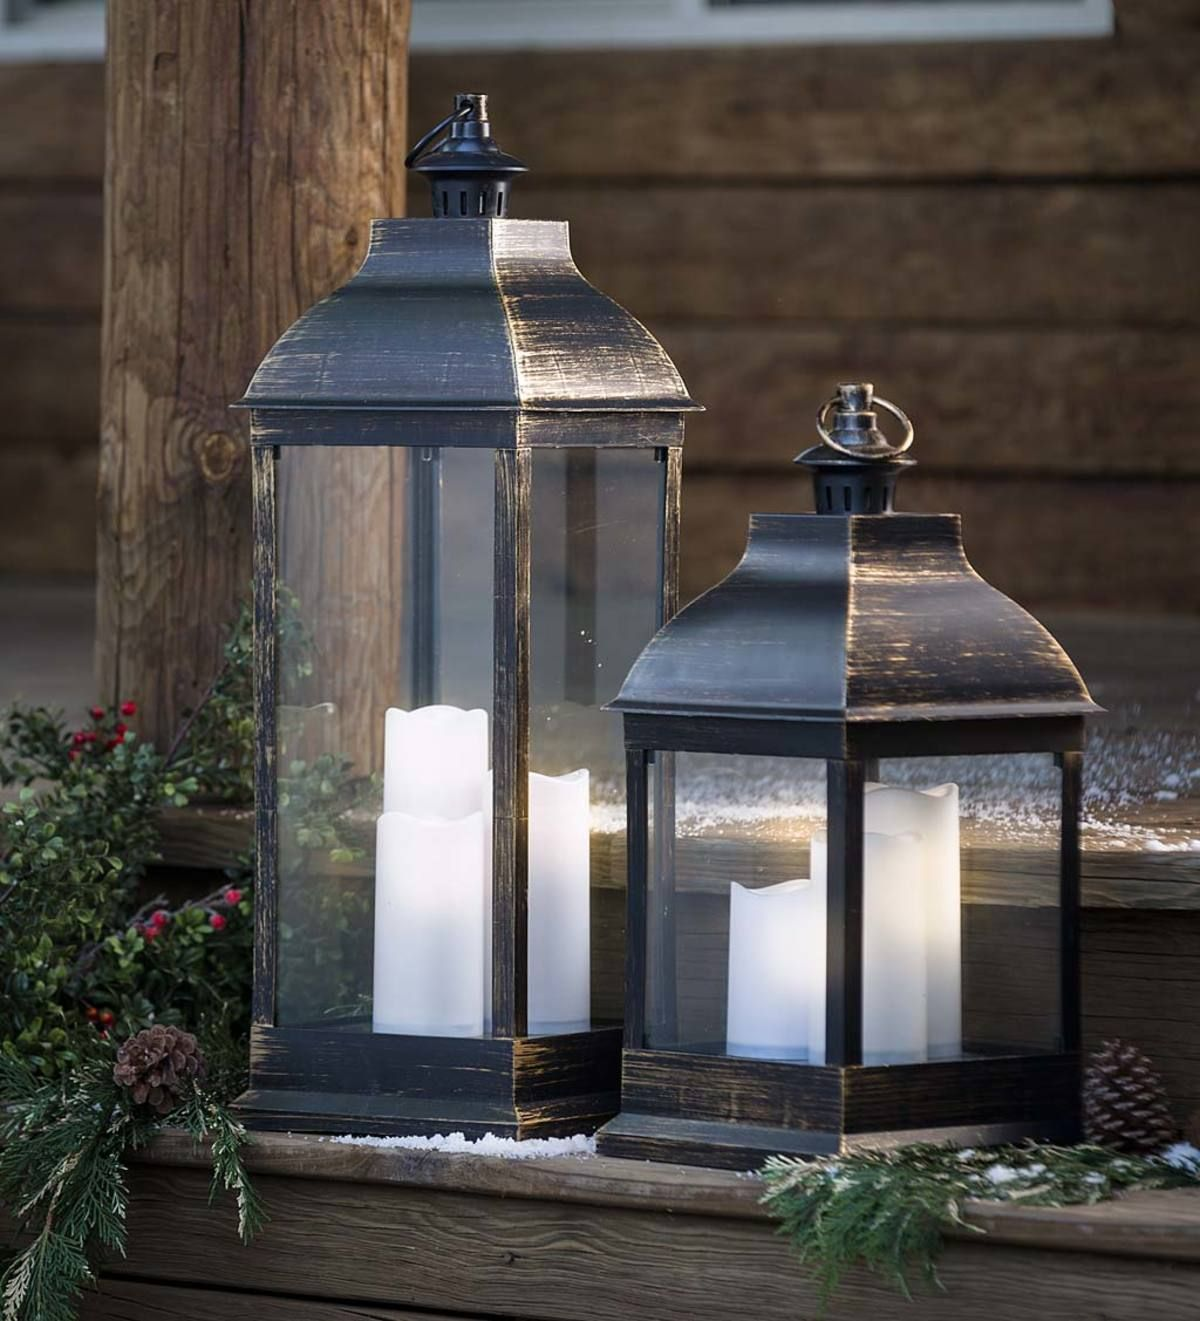 Indoor Outdoor Lantern With Led Candles Is An Elegant Way To Add Decorative Ambient L Outdoor Lanterns Decorative Led Lantern Decorating With Christmas Lights